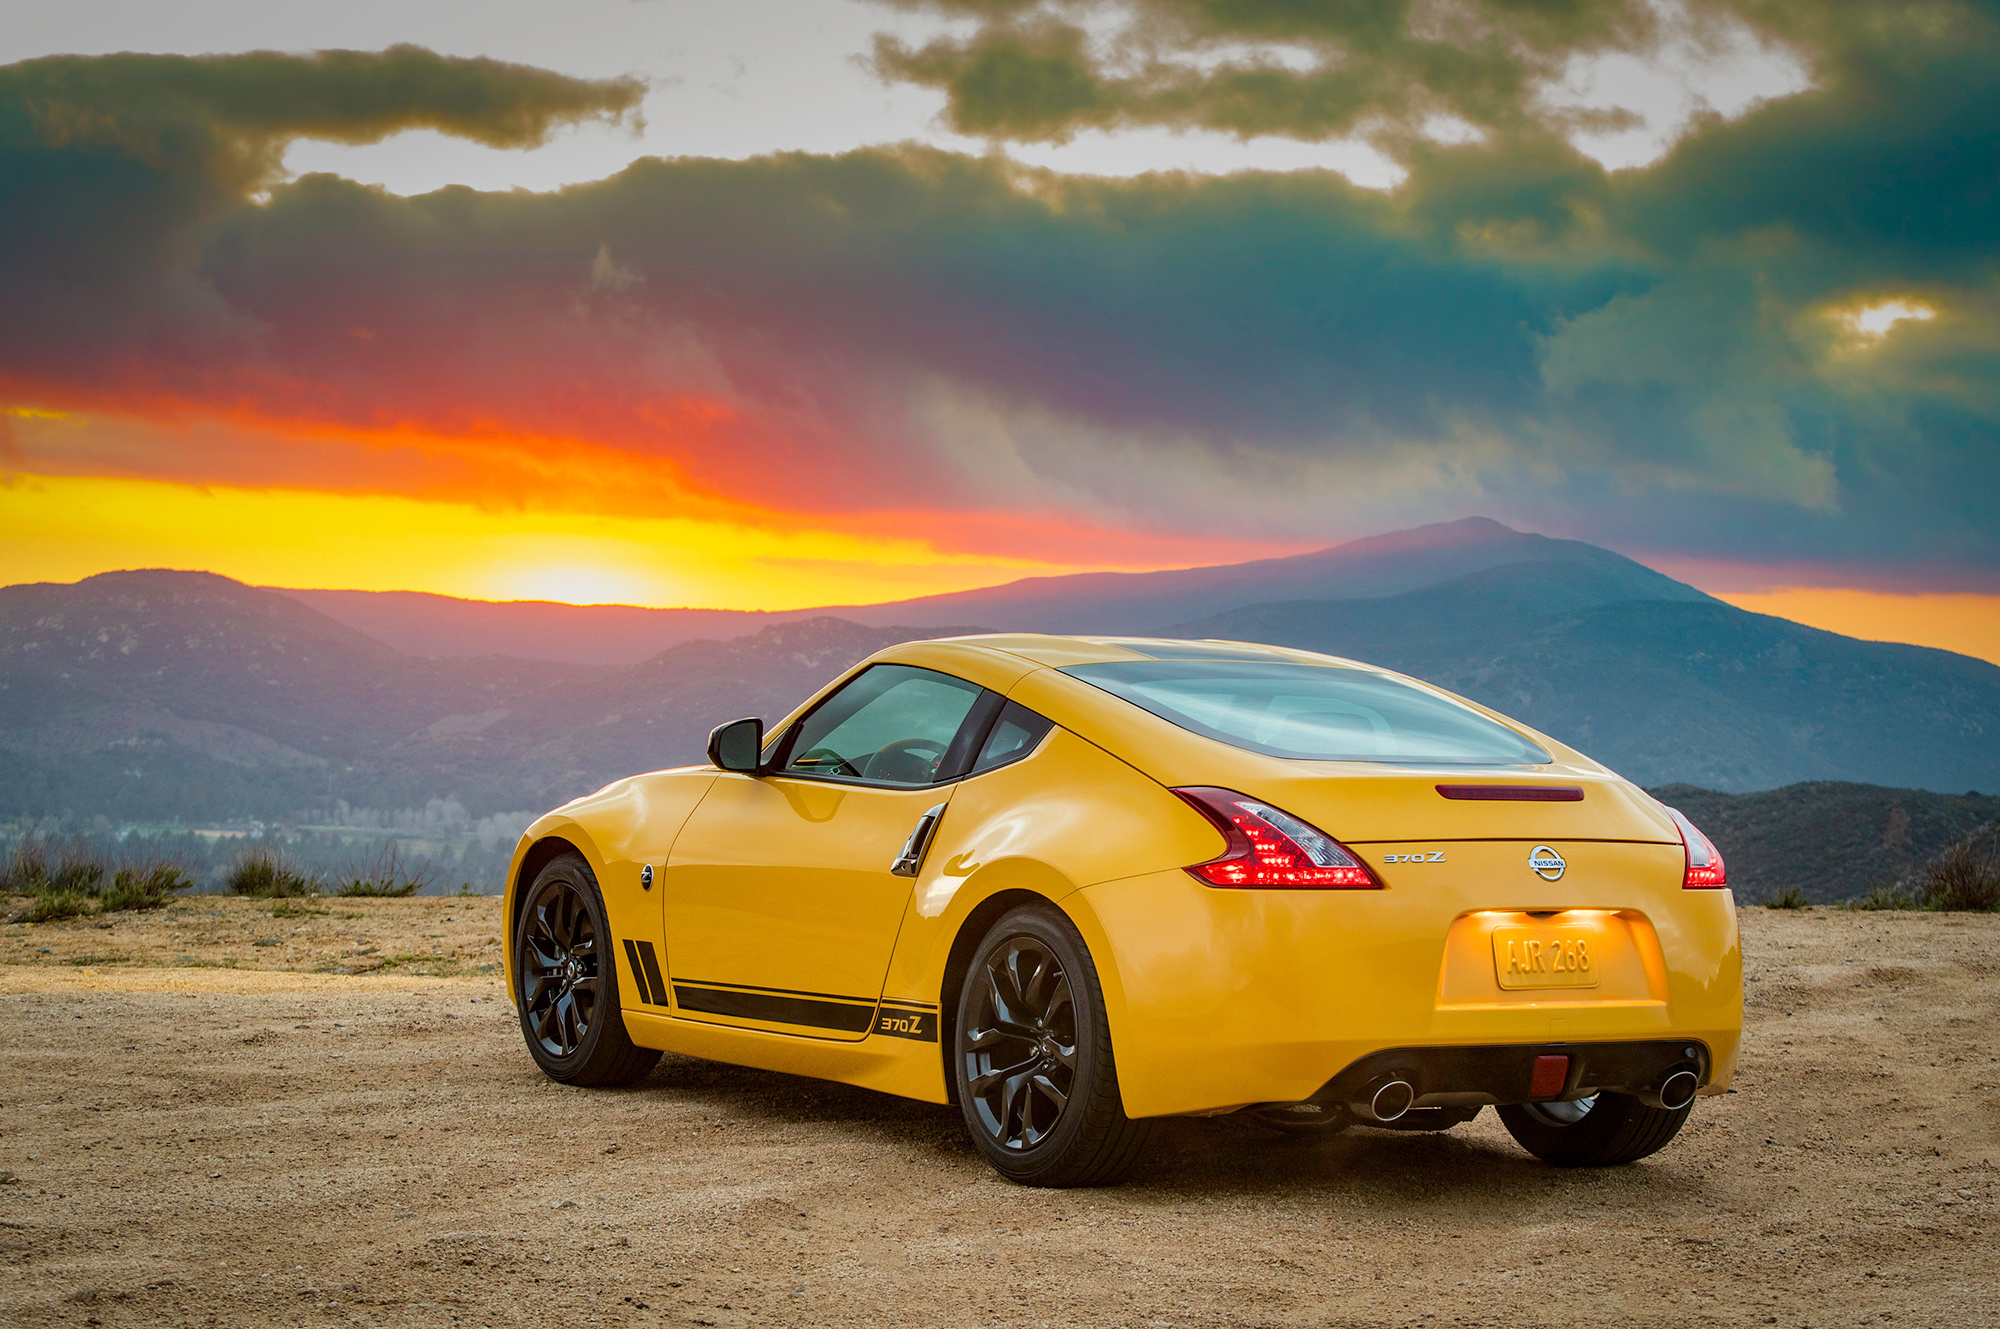 nissan 370z heritage edition wallpapers images photos pictures backgrounds. Black Bedroom Furniture Sets. Home Design Ideas